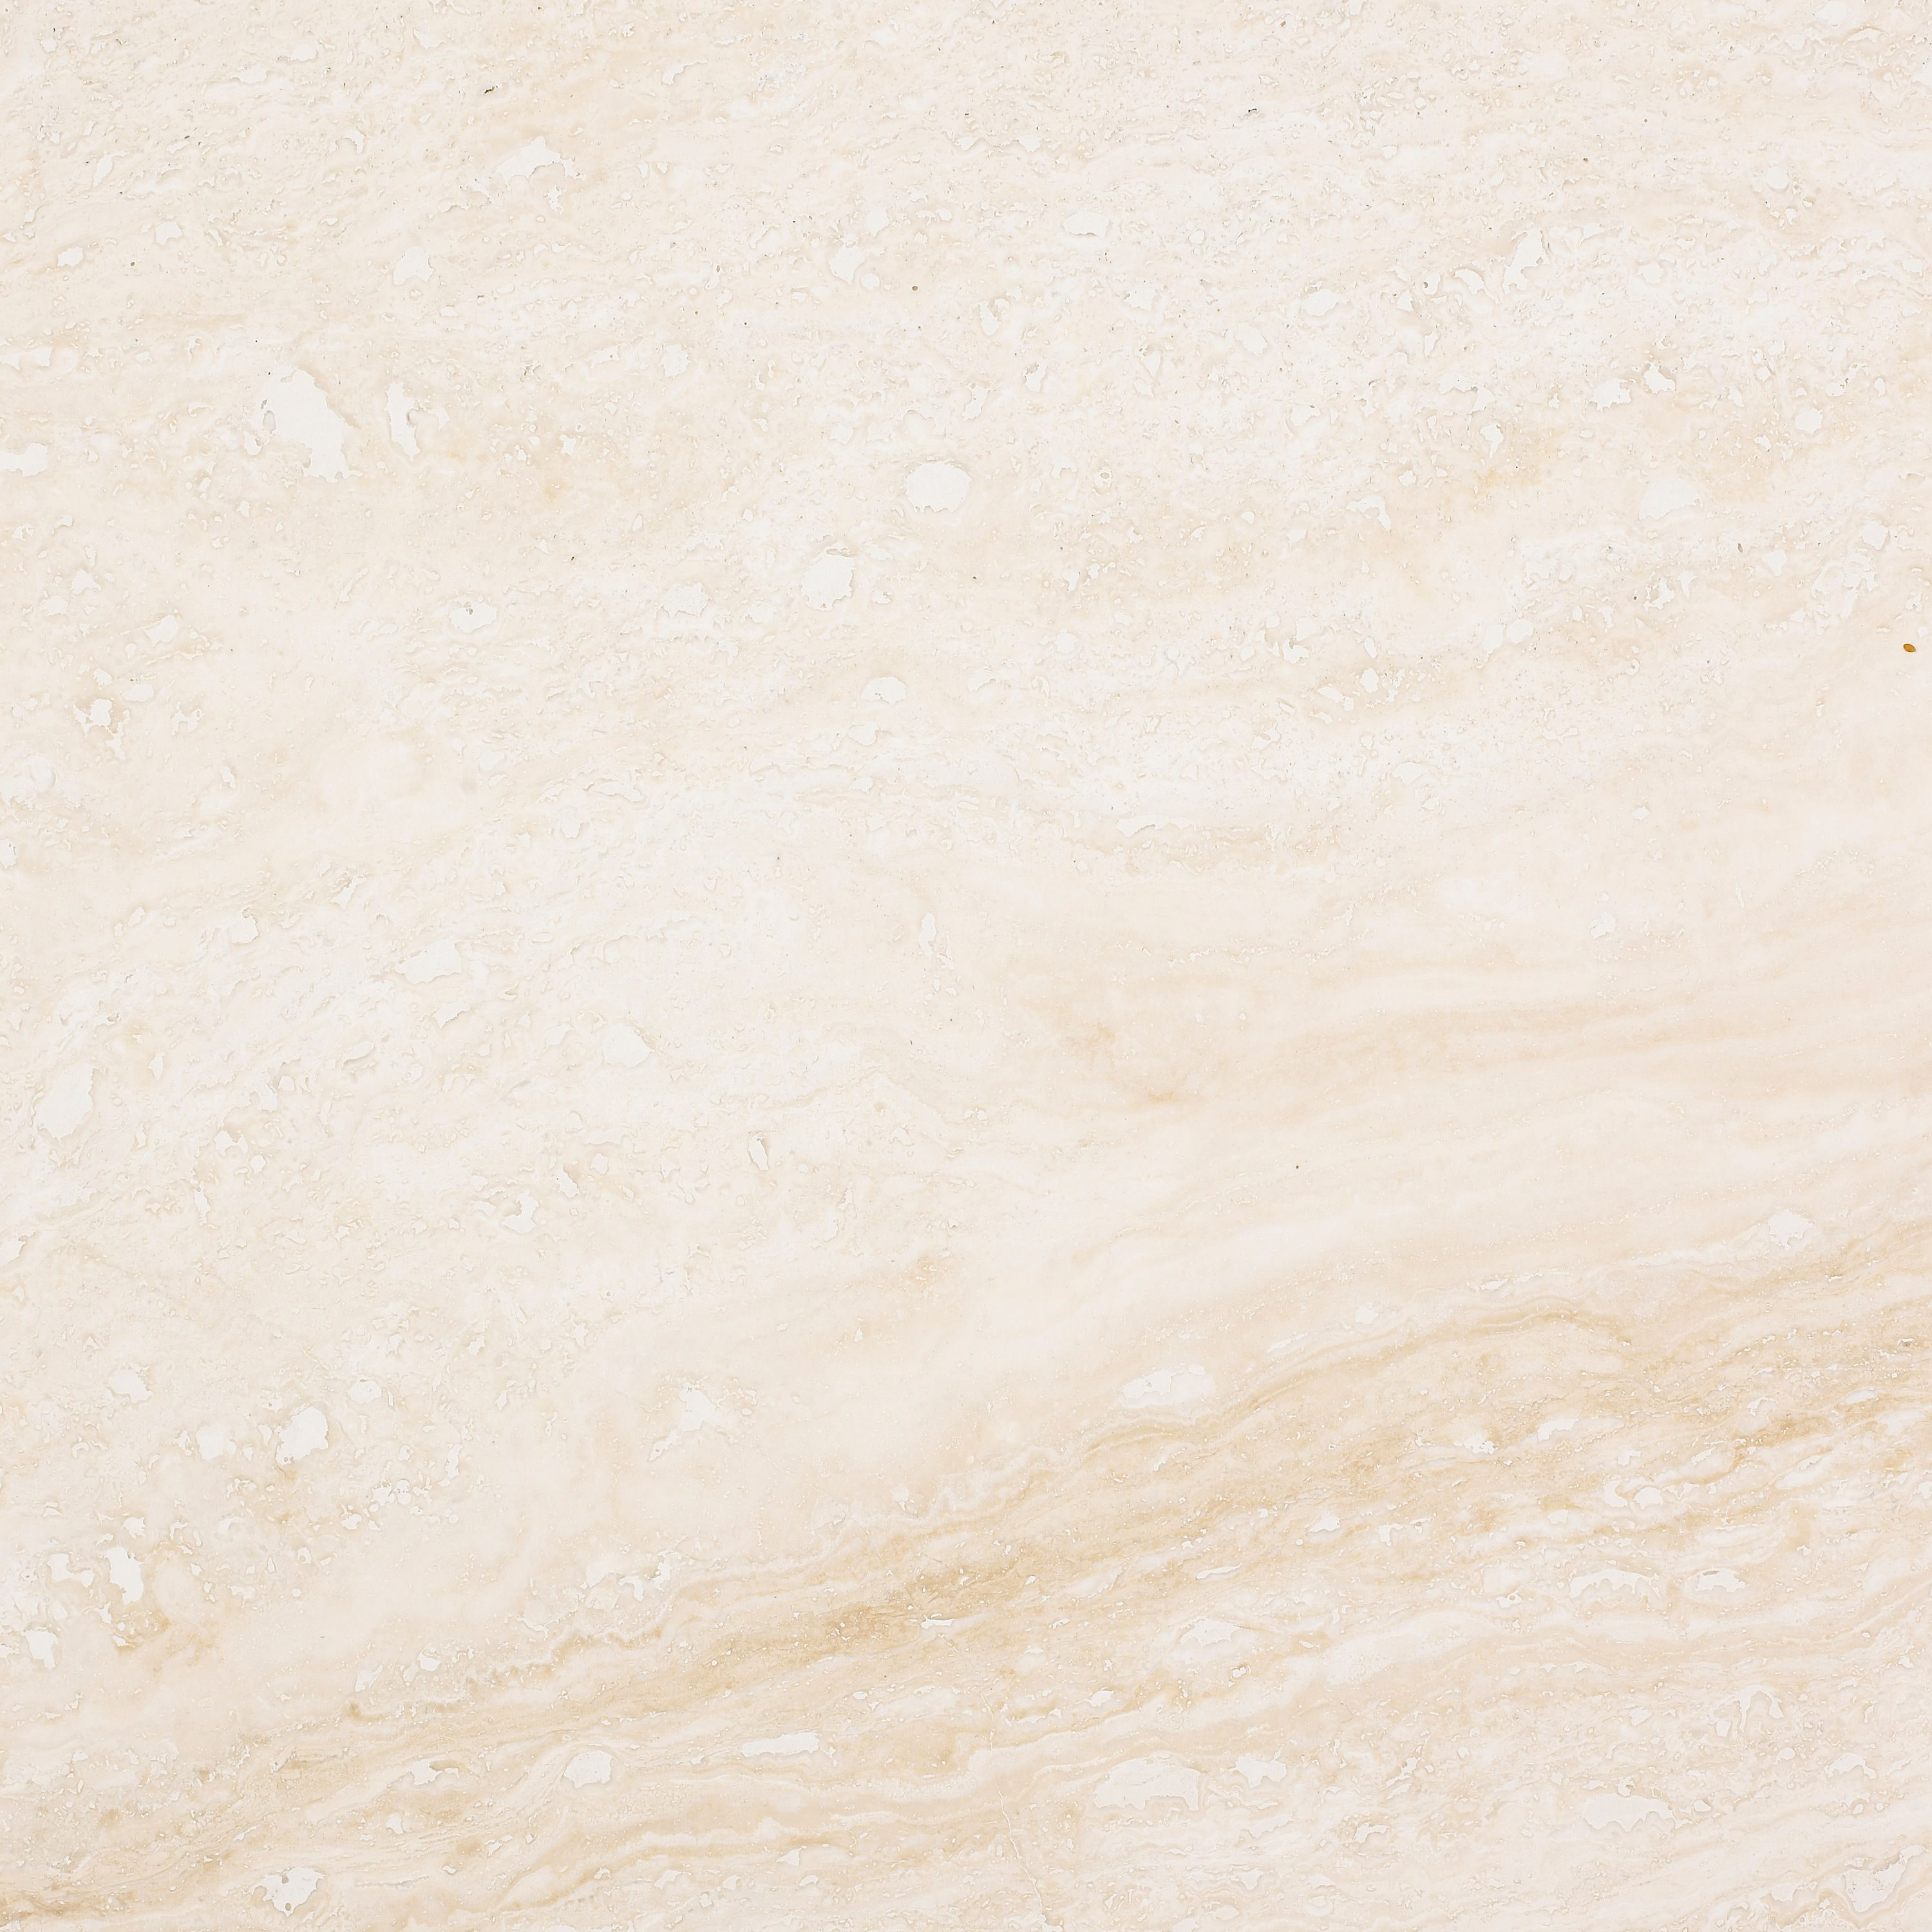 Alabastrino Honed Filled Travertine Tiles Mandarin Stone